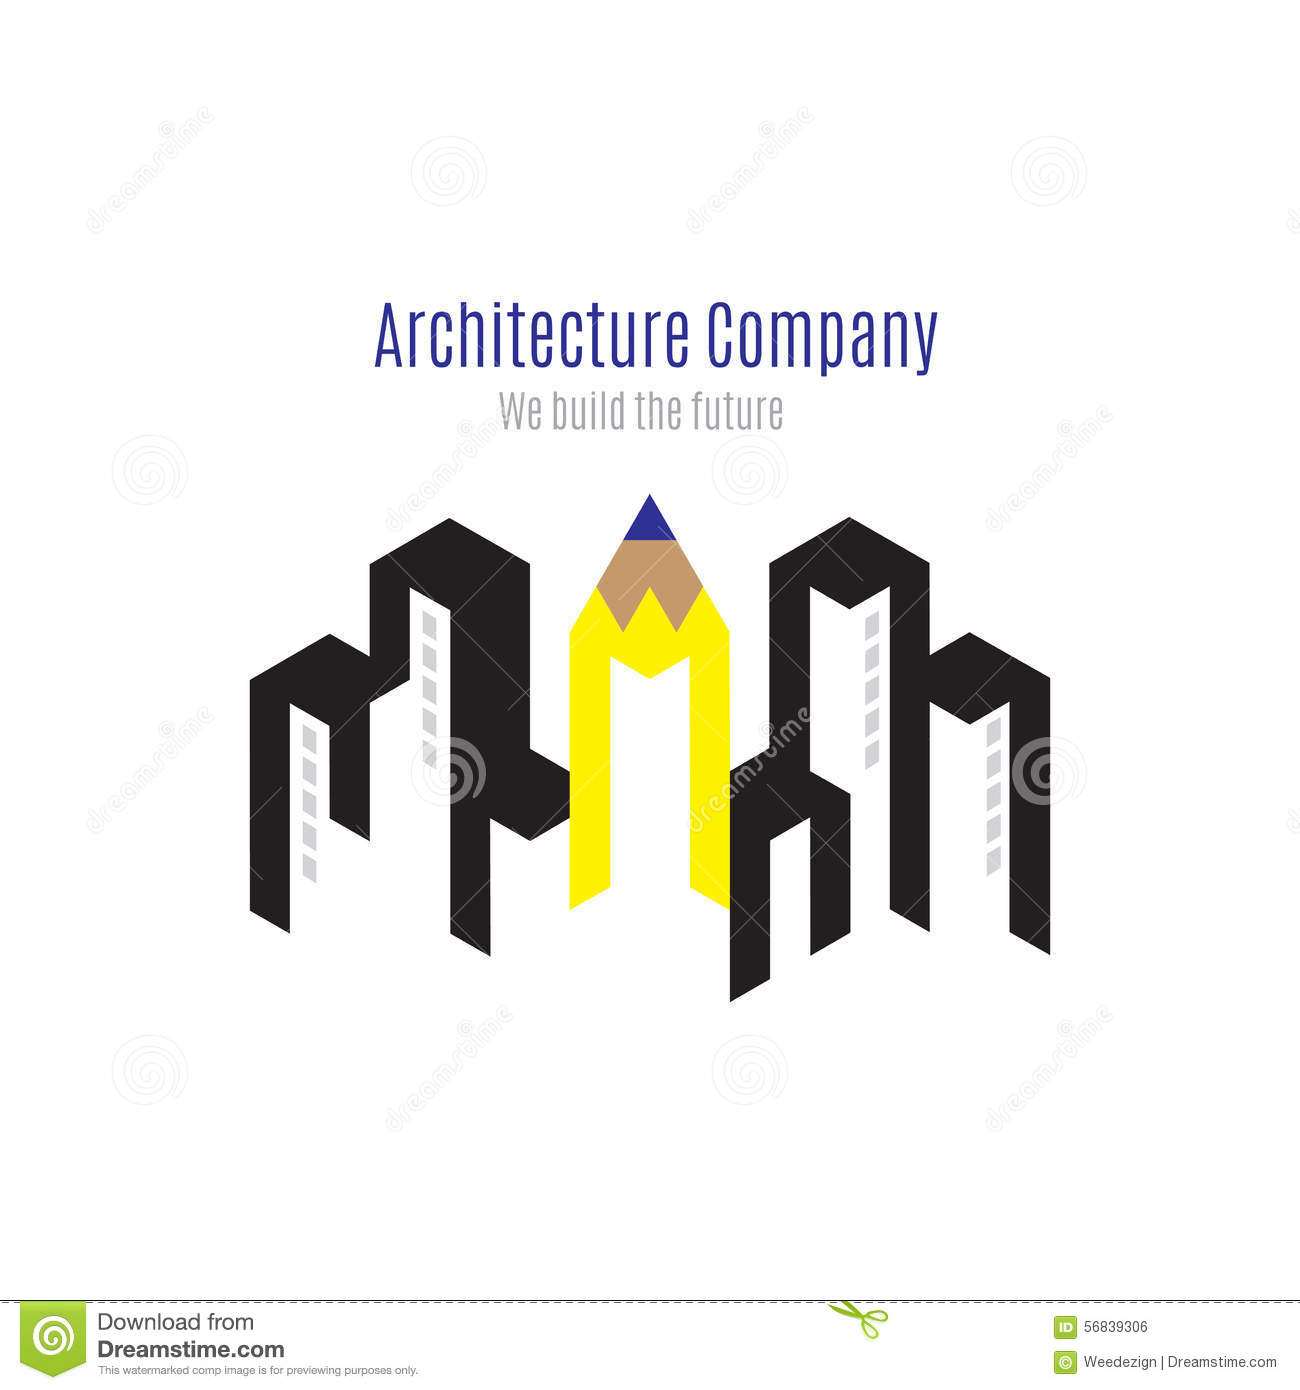 Charmant Vector : Architecture Company Logo With Building And Yellow Penc